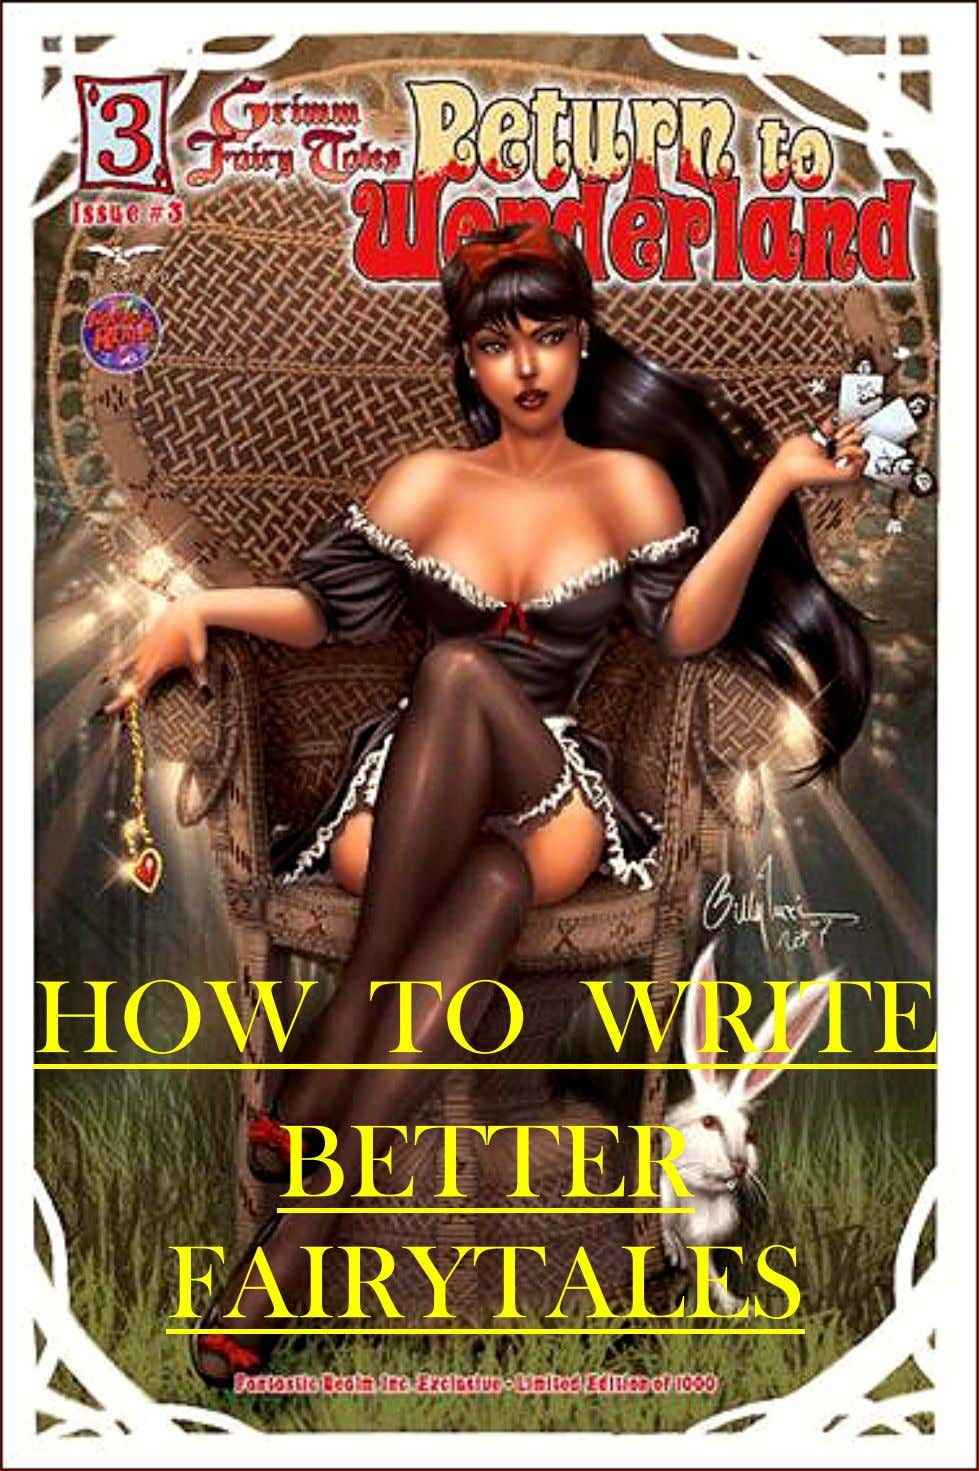 HOW TO WRITE BETTER FAIRYTALES